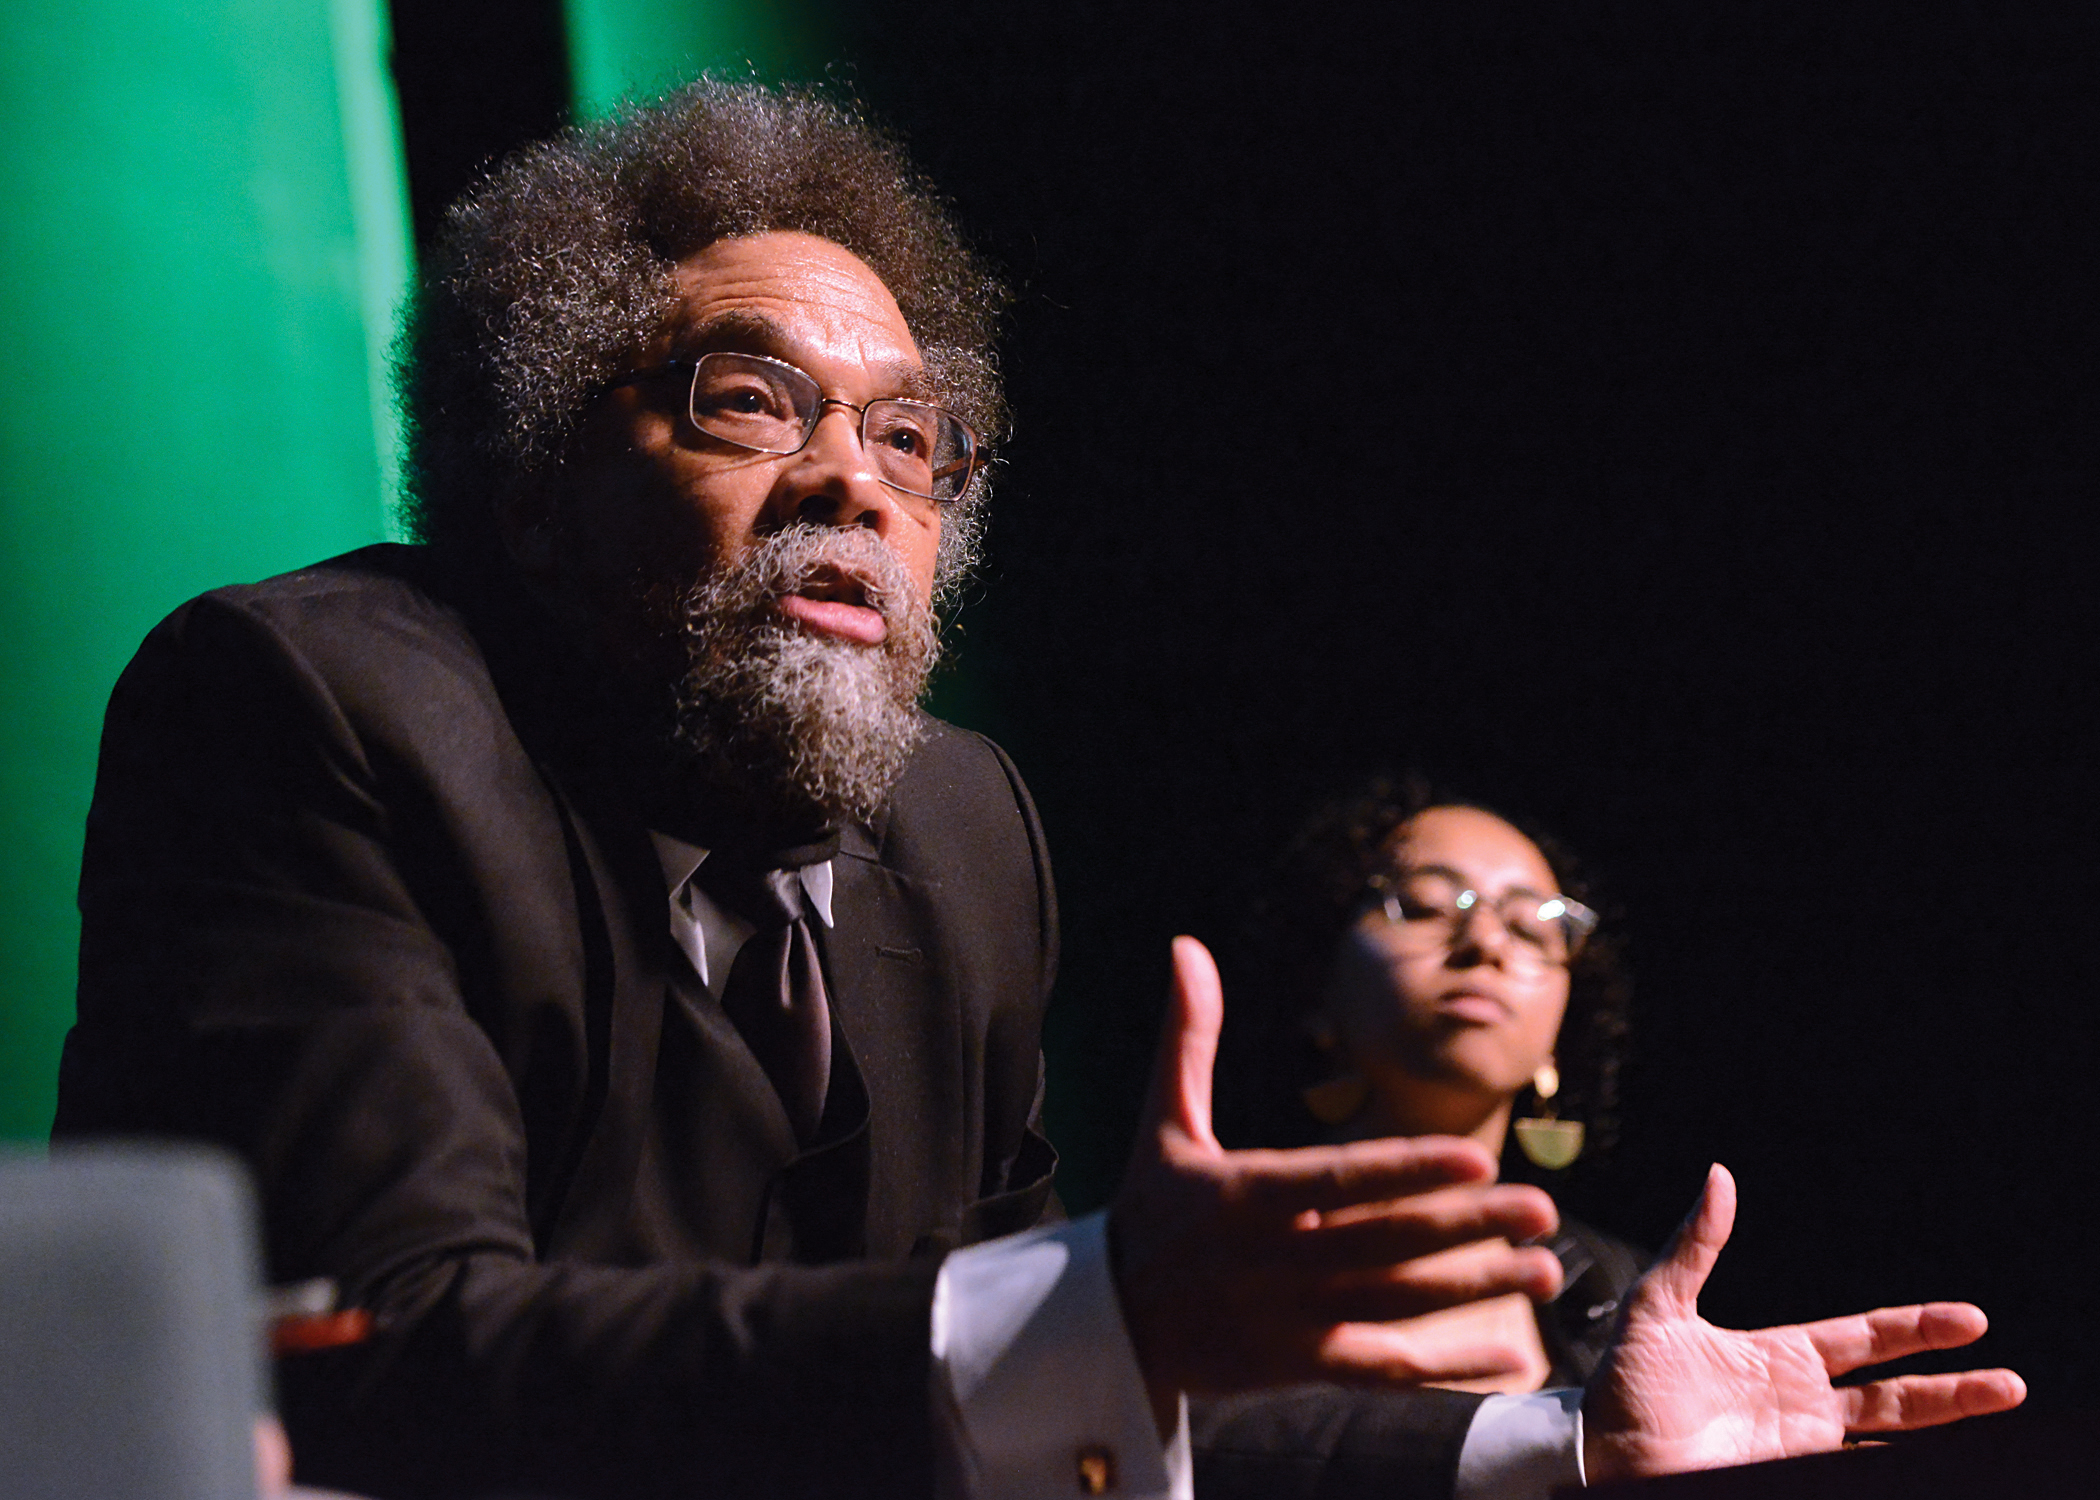 Dr. Cornel West speaks on stage at the Performing Art Center pavillion with student Leilani Hemmings Pallay